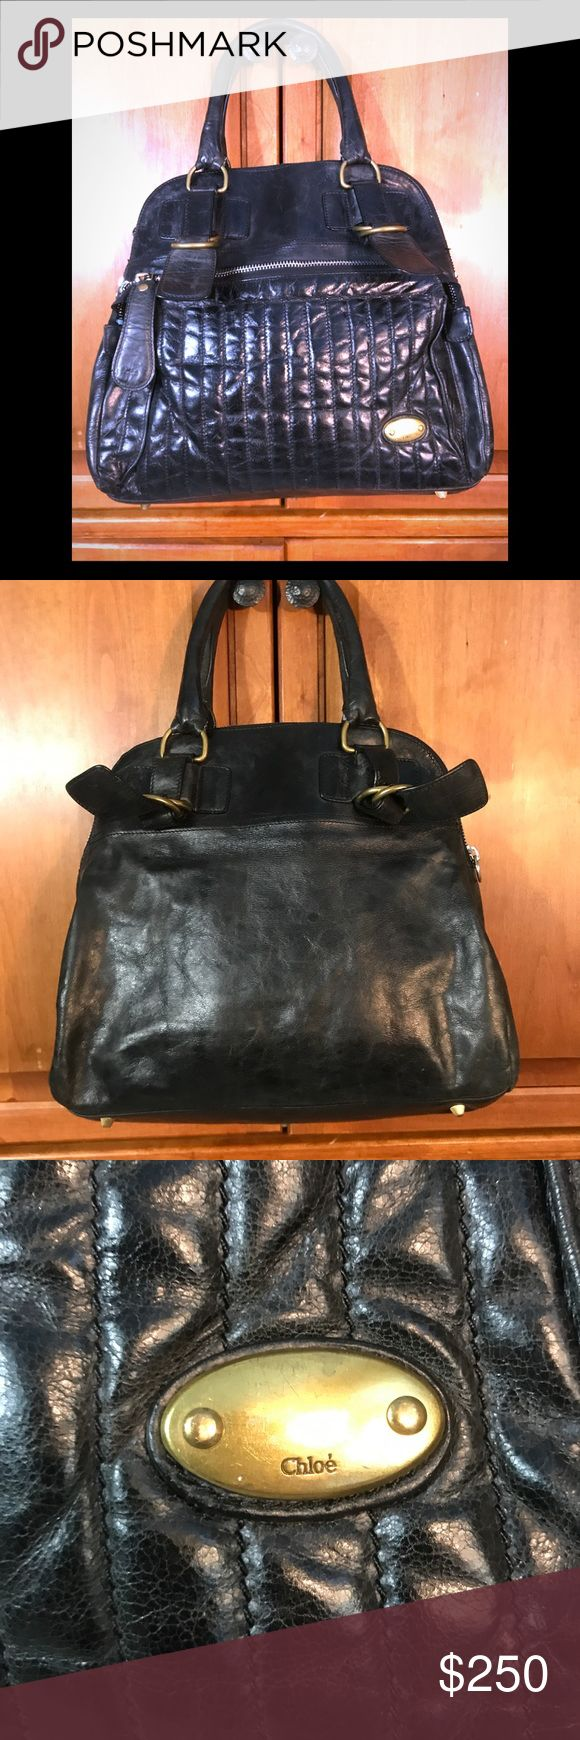 "♻️Chloe Leather oversized Handbag Chloe Premium Leather Black oversized Handbag with exterior Big Zip Pocket and interior Pockets, Zip Closure   100% Authentic   One of the leather Zipper Tags needs the metal replaced (see last pic)   Other then that the bag is in good Condition and has a lot of life left  Retails - 4,000  Measurements  17"" W 13"" L 6"" Straps Chloe Bags Shoulder Bags"